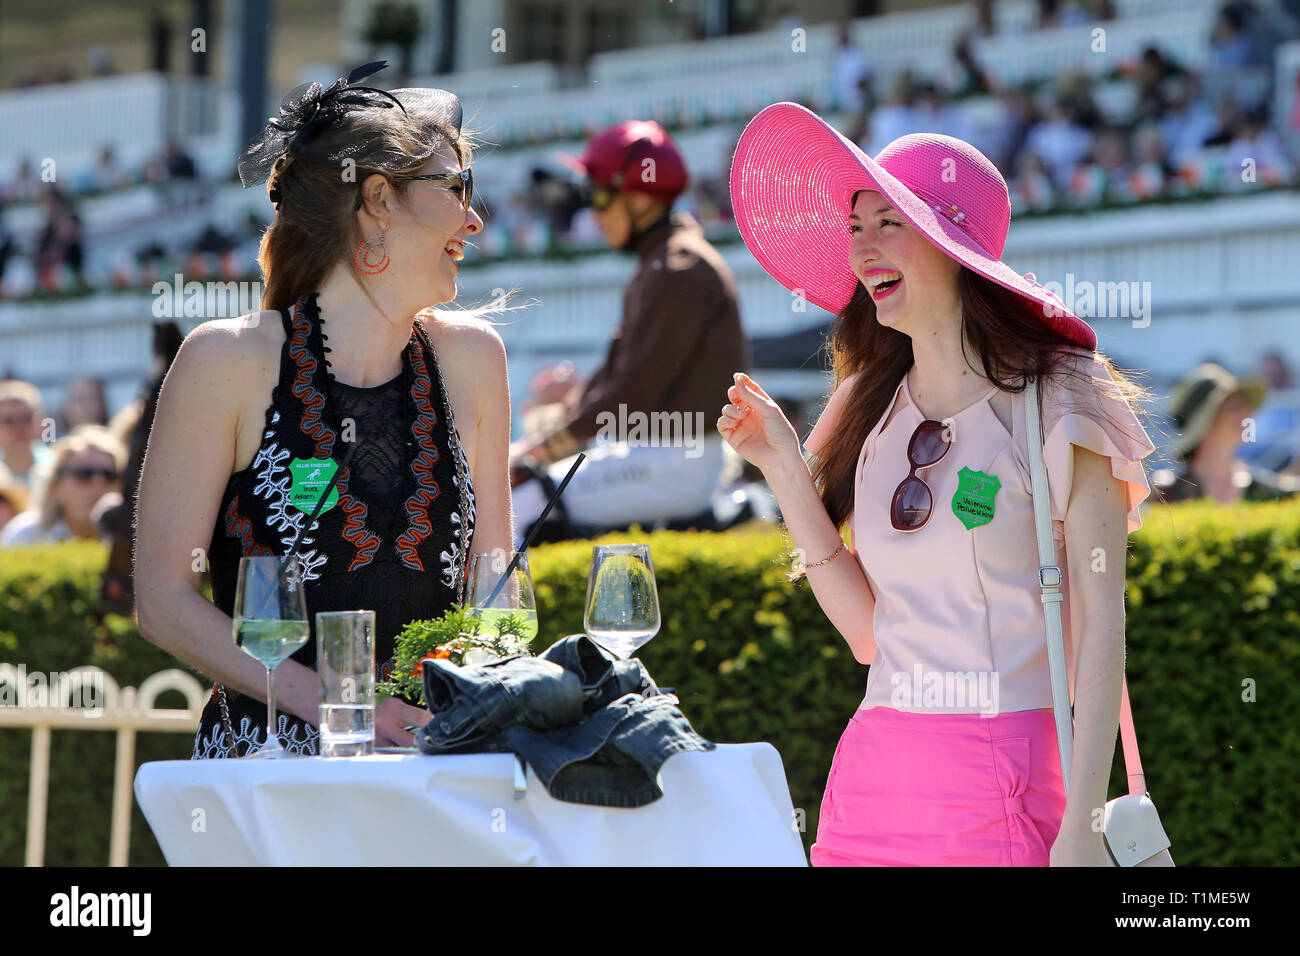 20.05.2018, Hoppegarten, Brandenburg, Germany - young women with hats have fun at horse races. 00S180520D644CAROEX.JPG [MODEL RELEASE: NO, PROPERTY RE - Stock Image